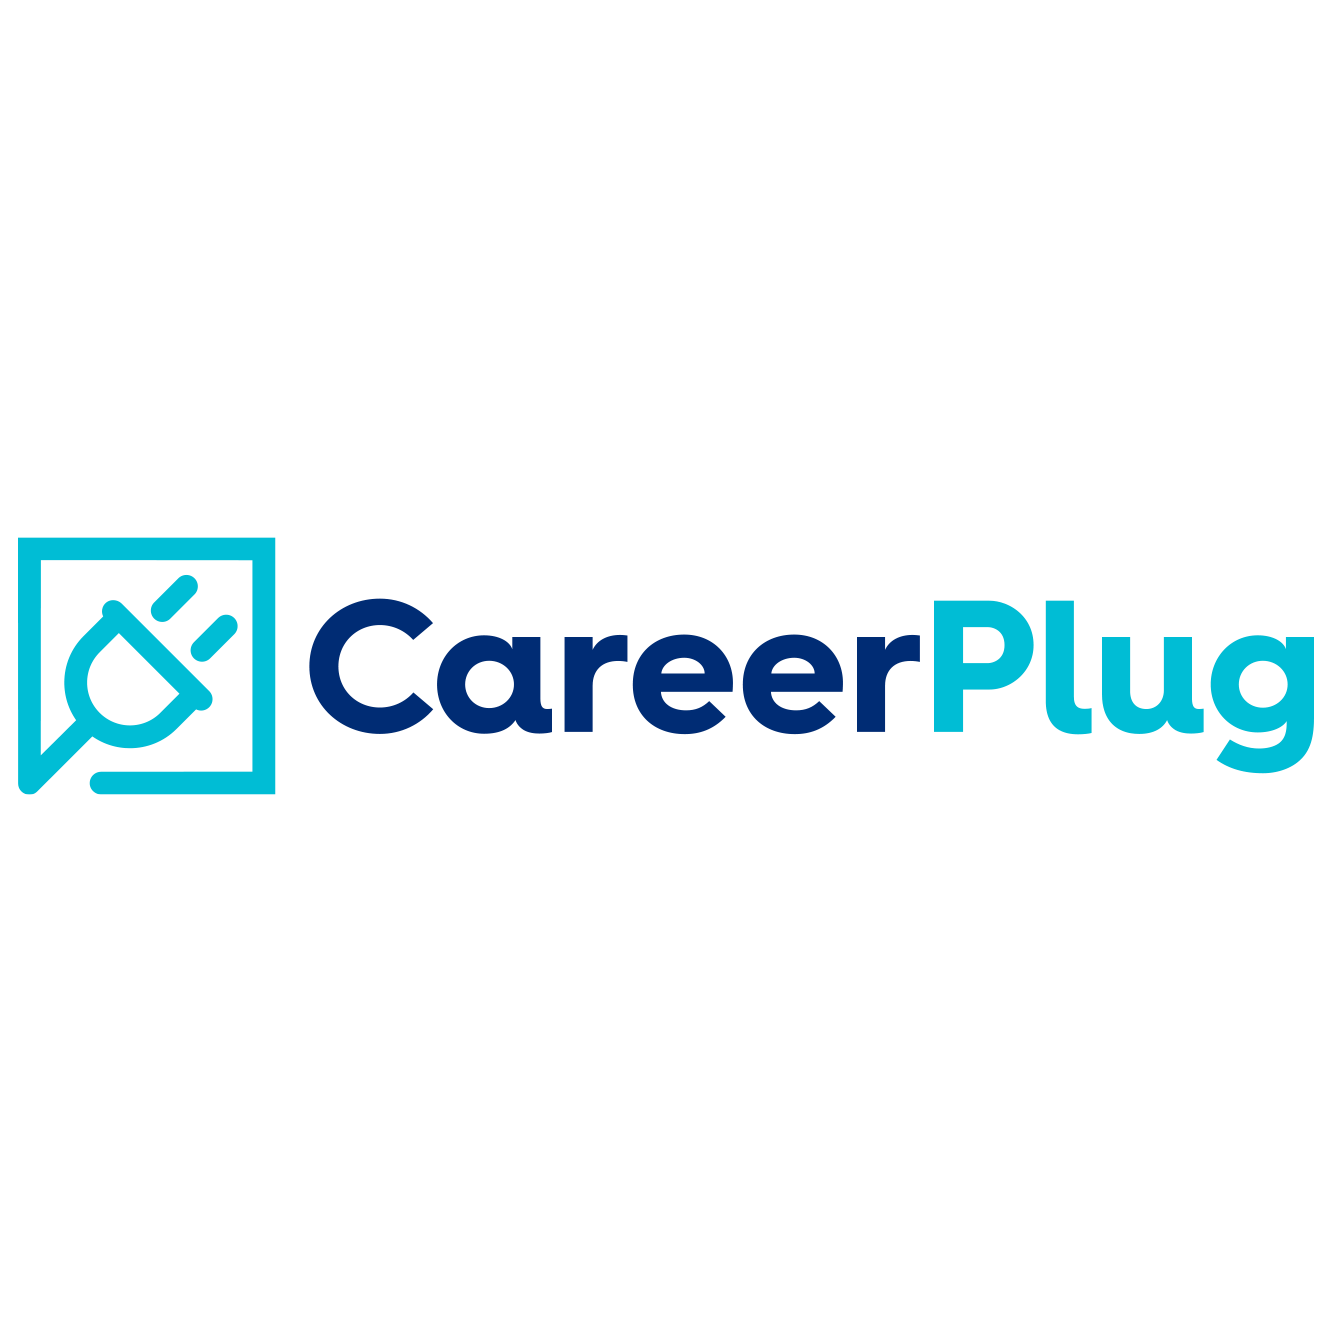 CareerPlug logo